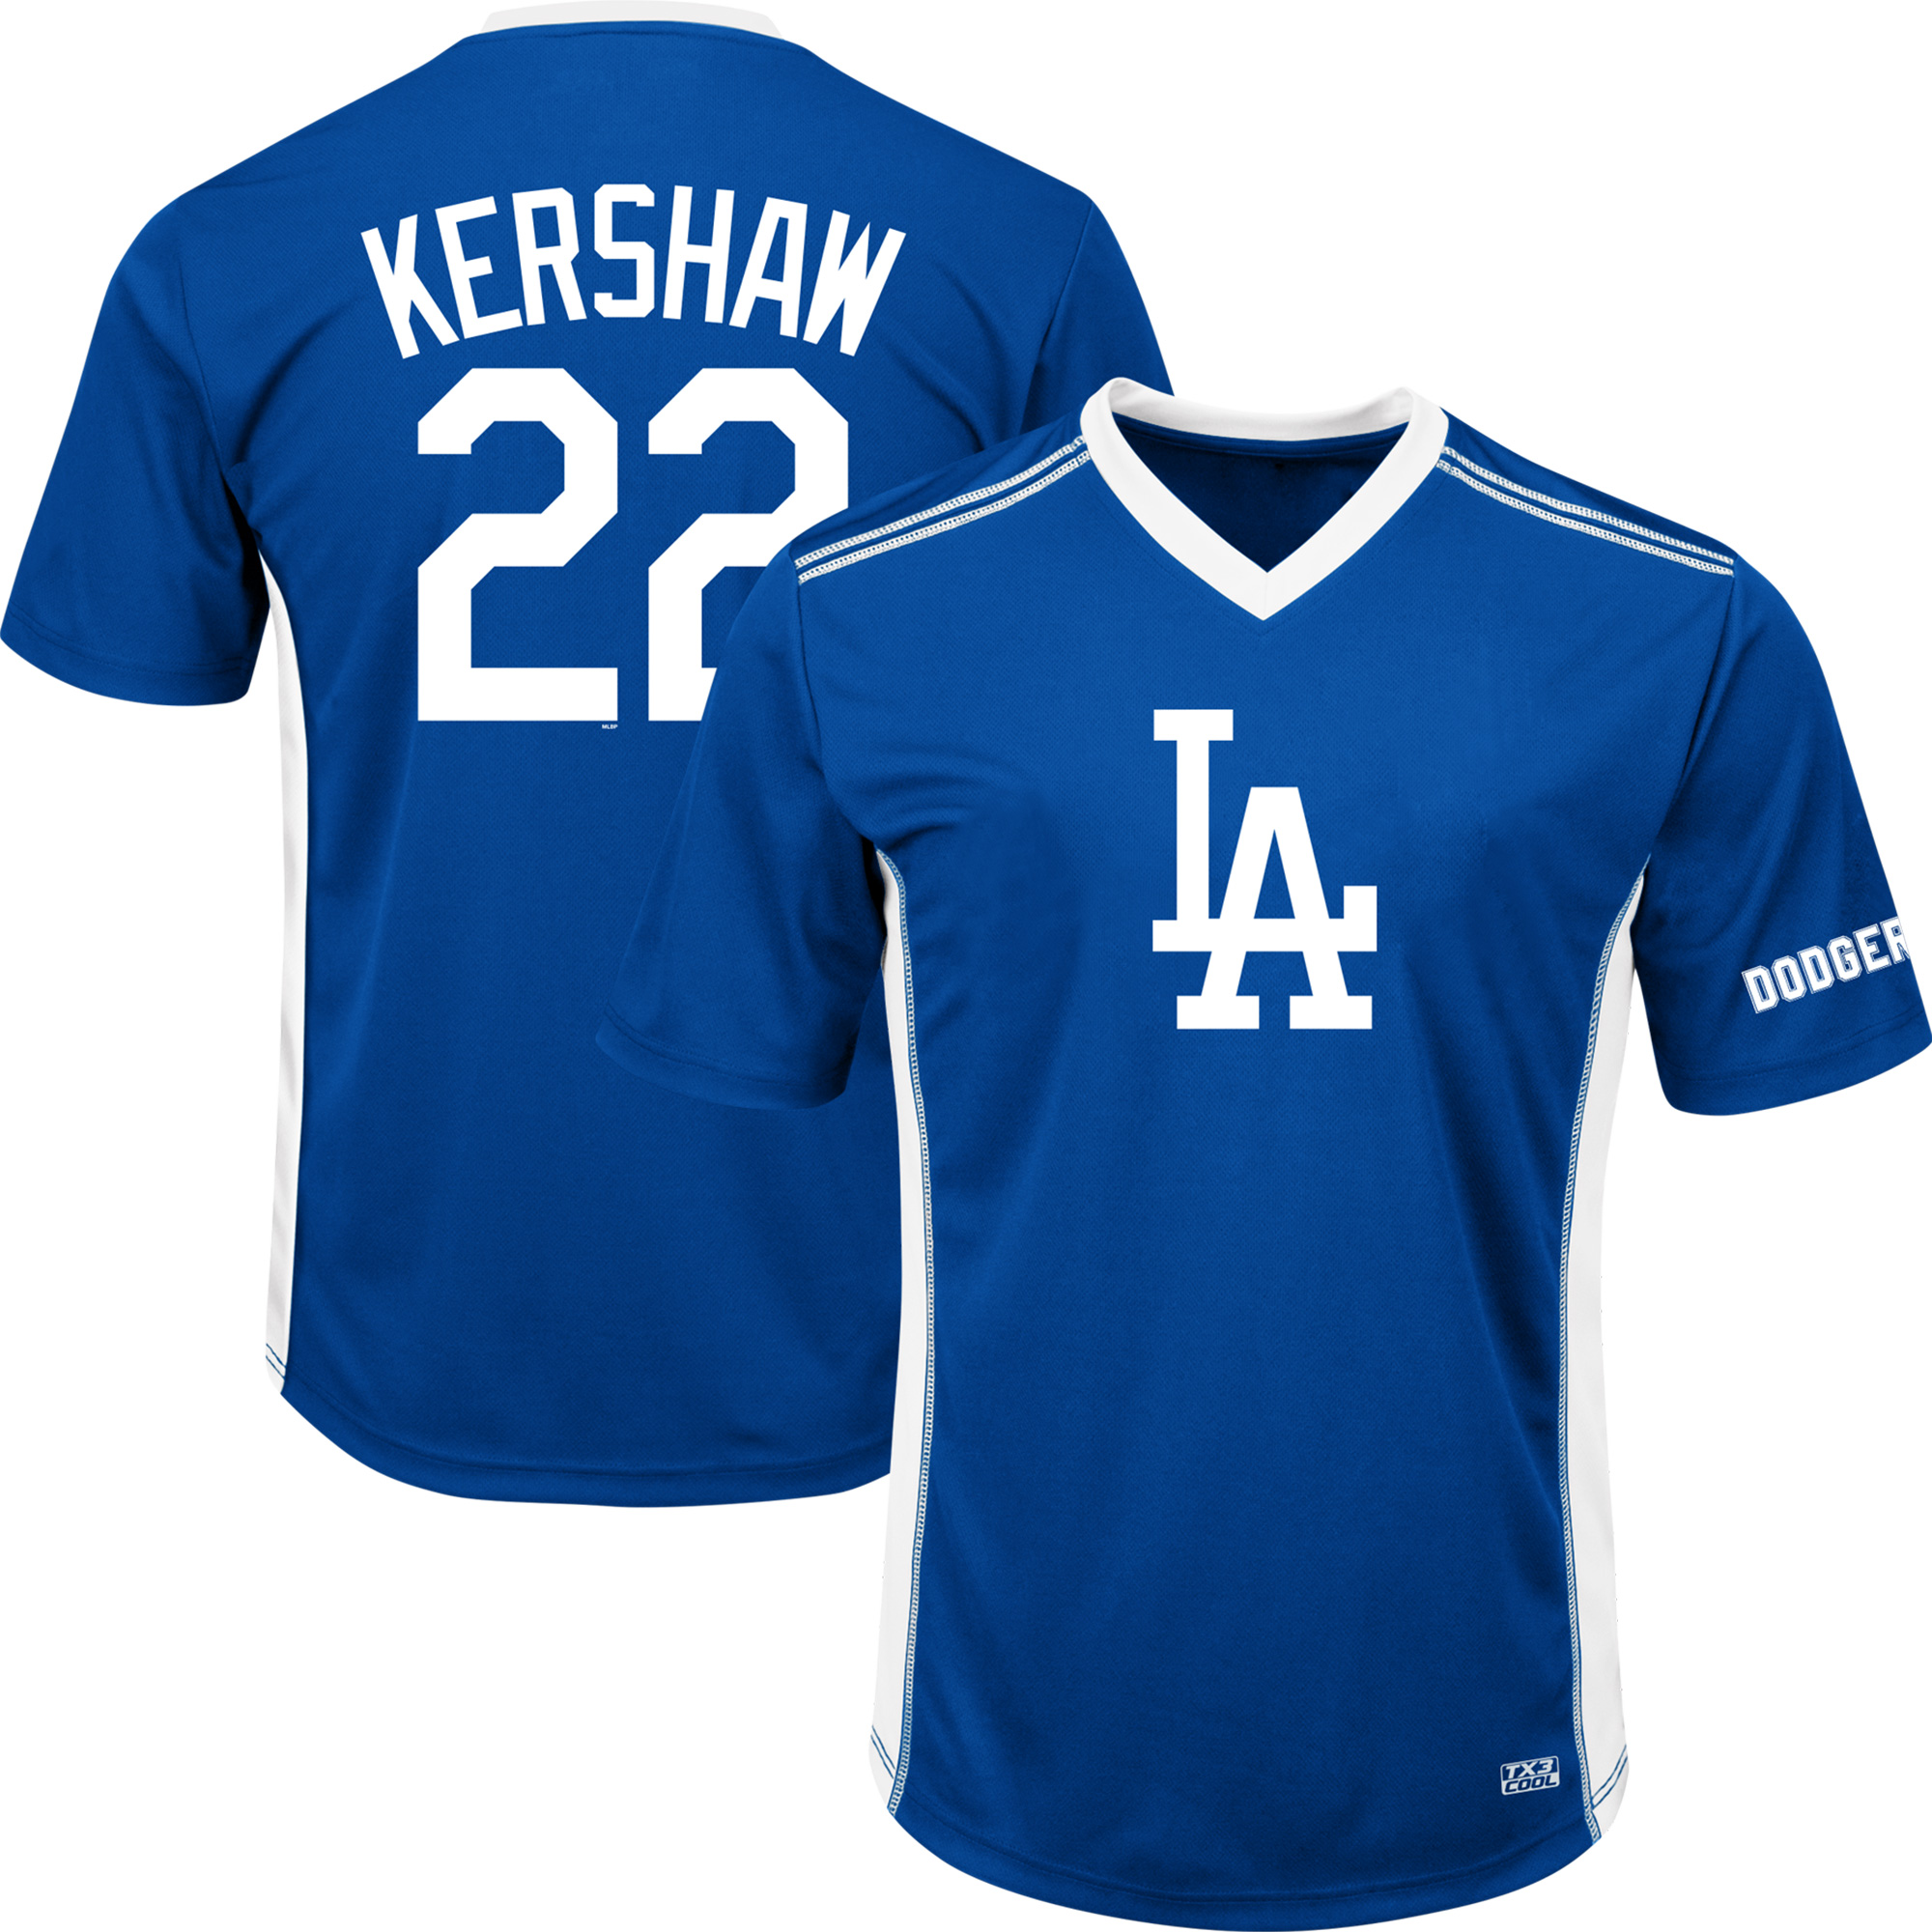 Men's Majestic Clayton Kershaw Royal Los Angeles Dodgers Player Name & Number Cool Base V-Neck T-Shirt by MAJESTIC LSG